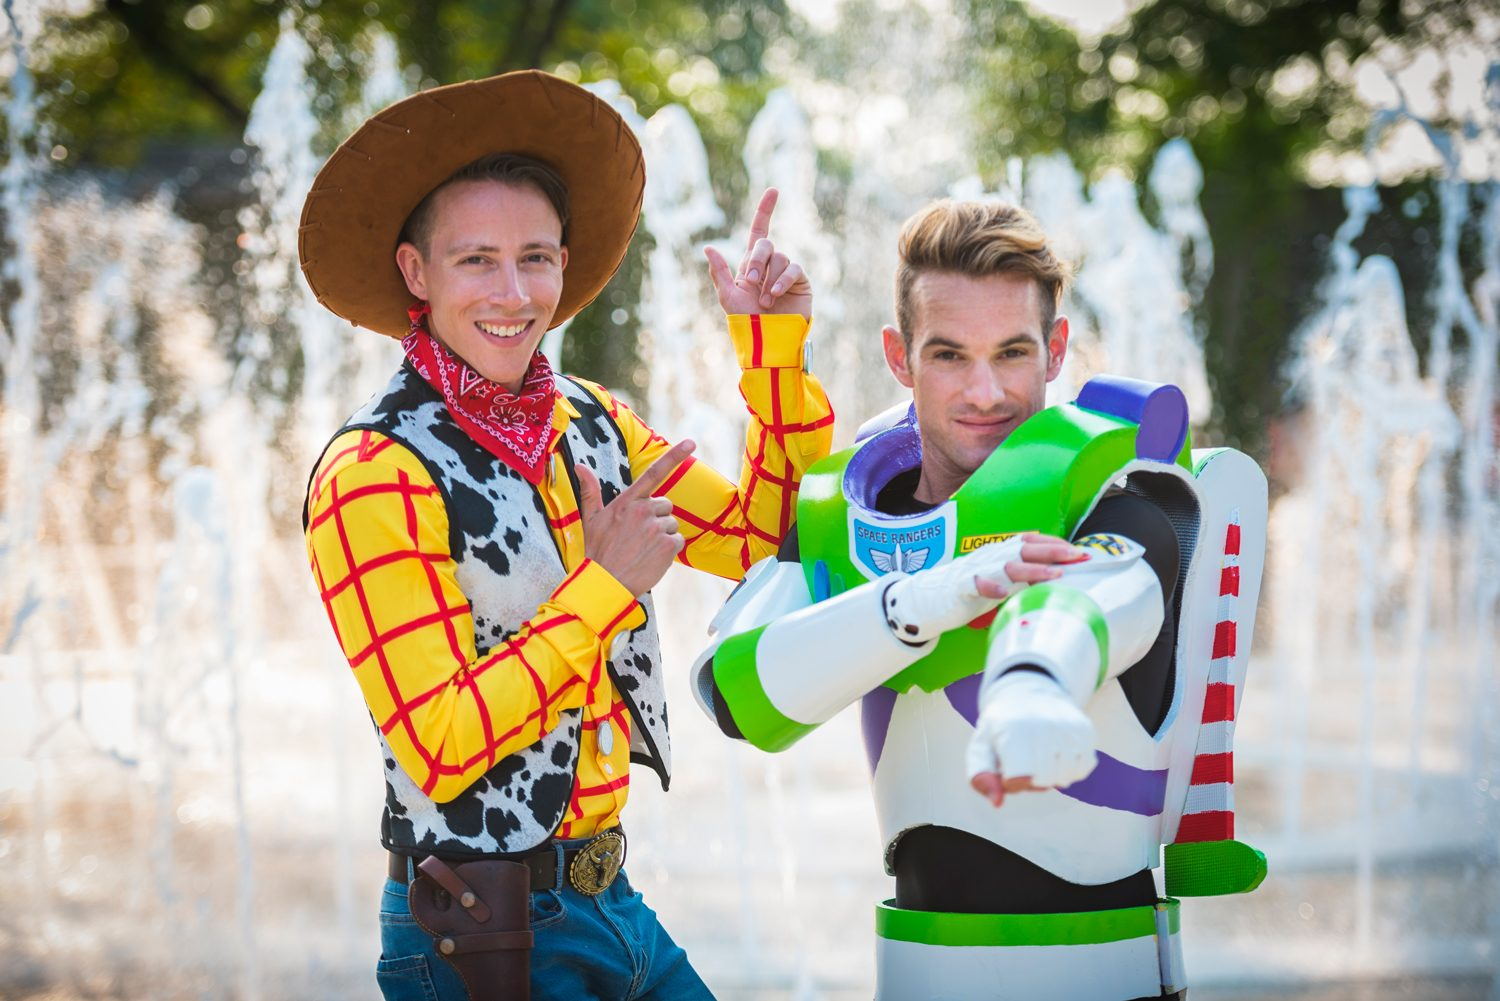 These Grooms Dressed As Buzz Lightyear And Sheriff Woody In Their Disney Themed Wedding